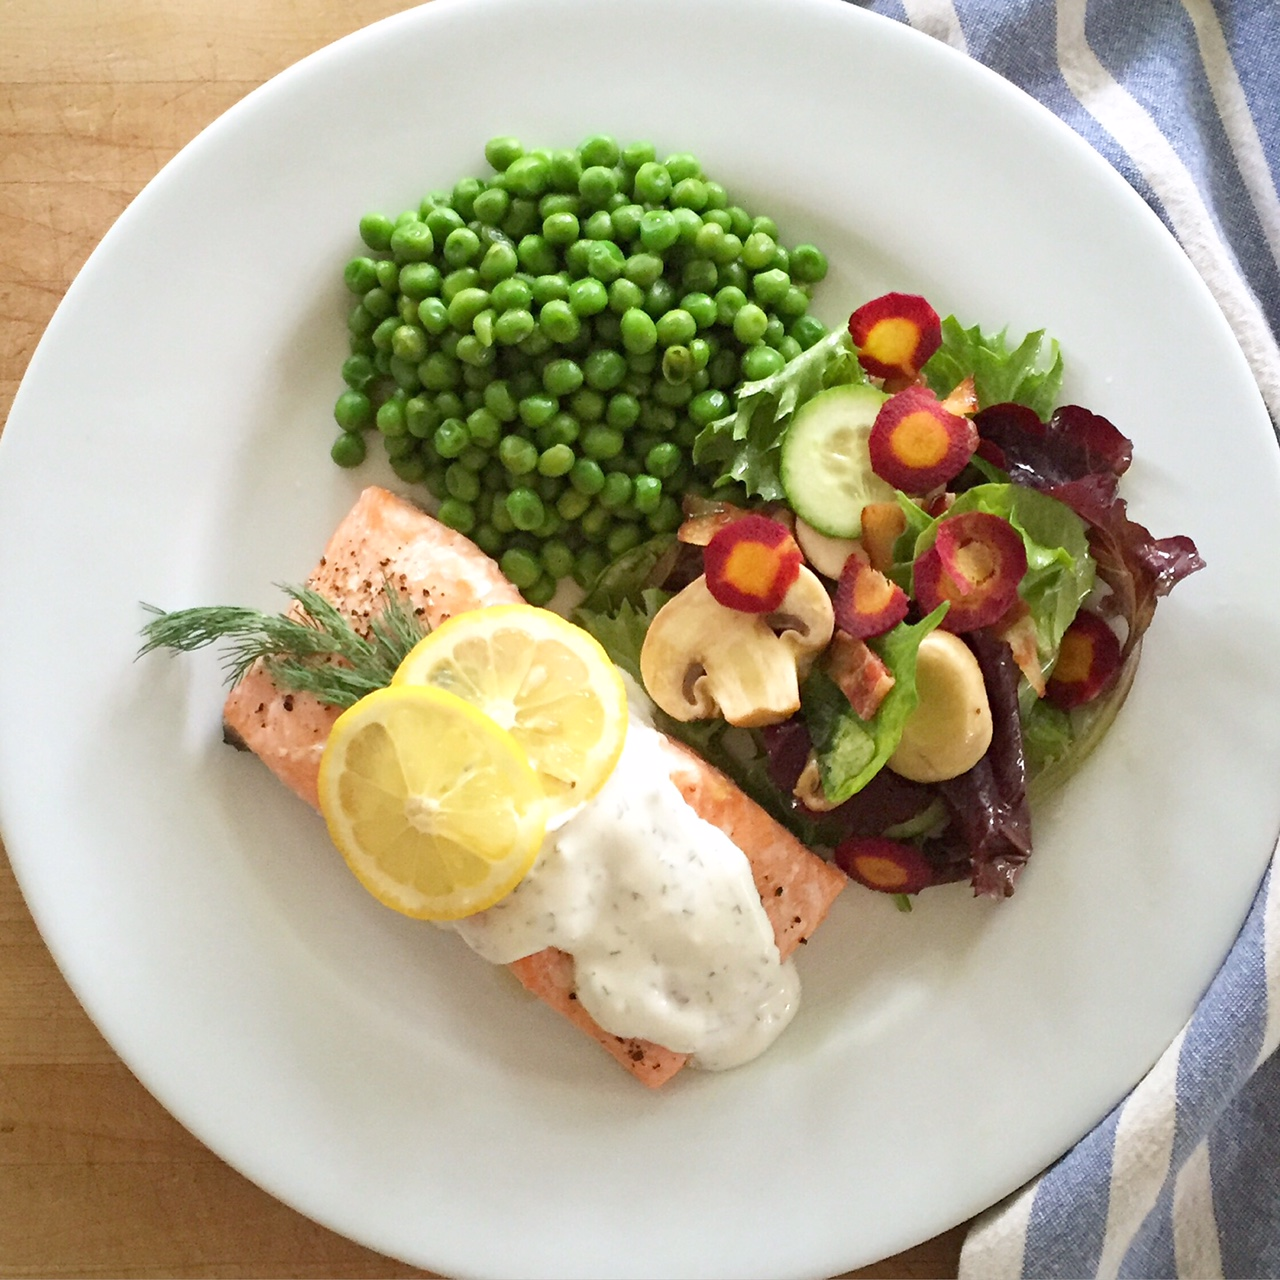 Baked Salmon with Lemon-Dill Sauce